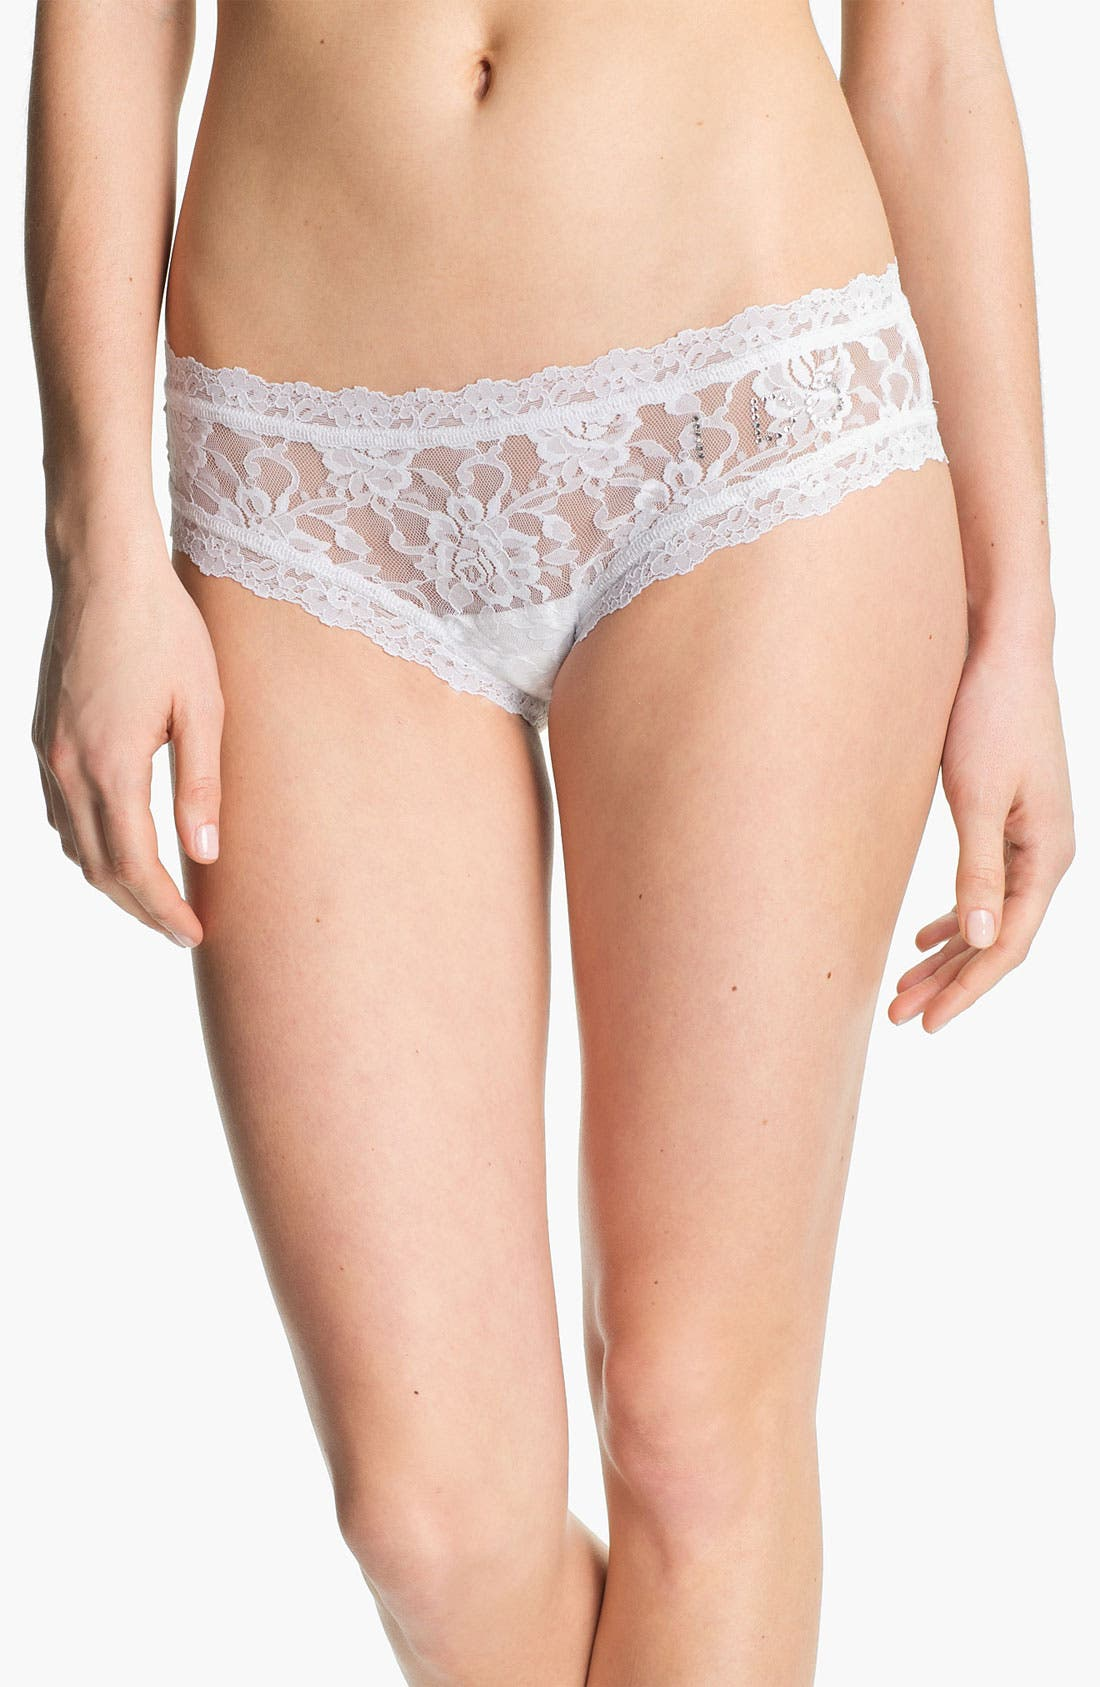 Alternate Image 1 Selected - Hanky Panky 'I Do' Swarovski Crystal Cheeky Hipster Briefs